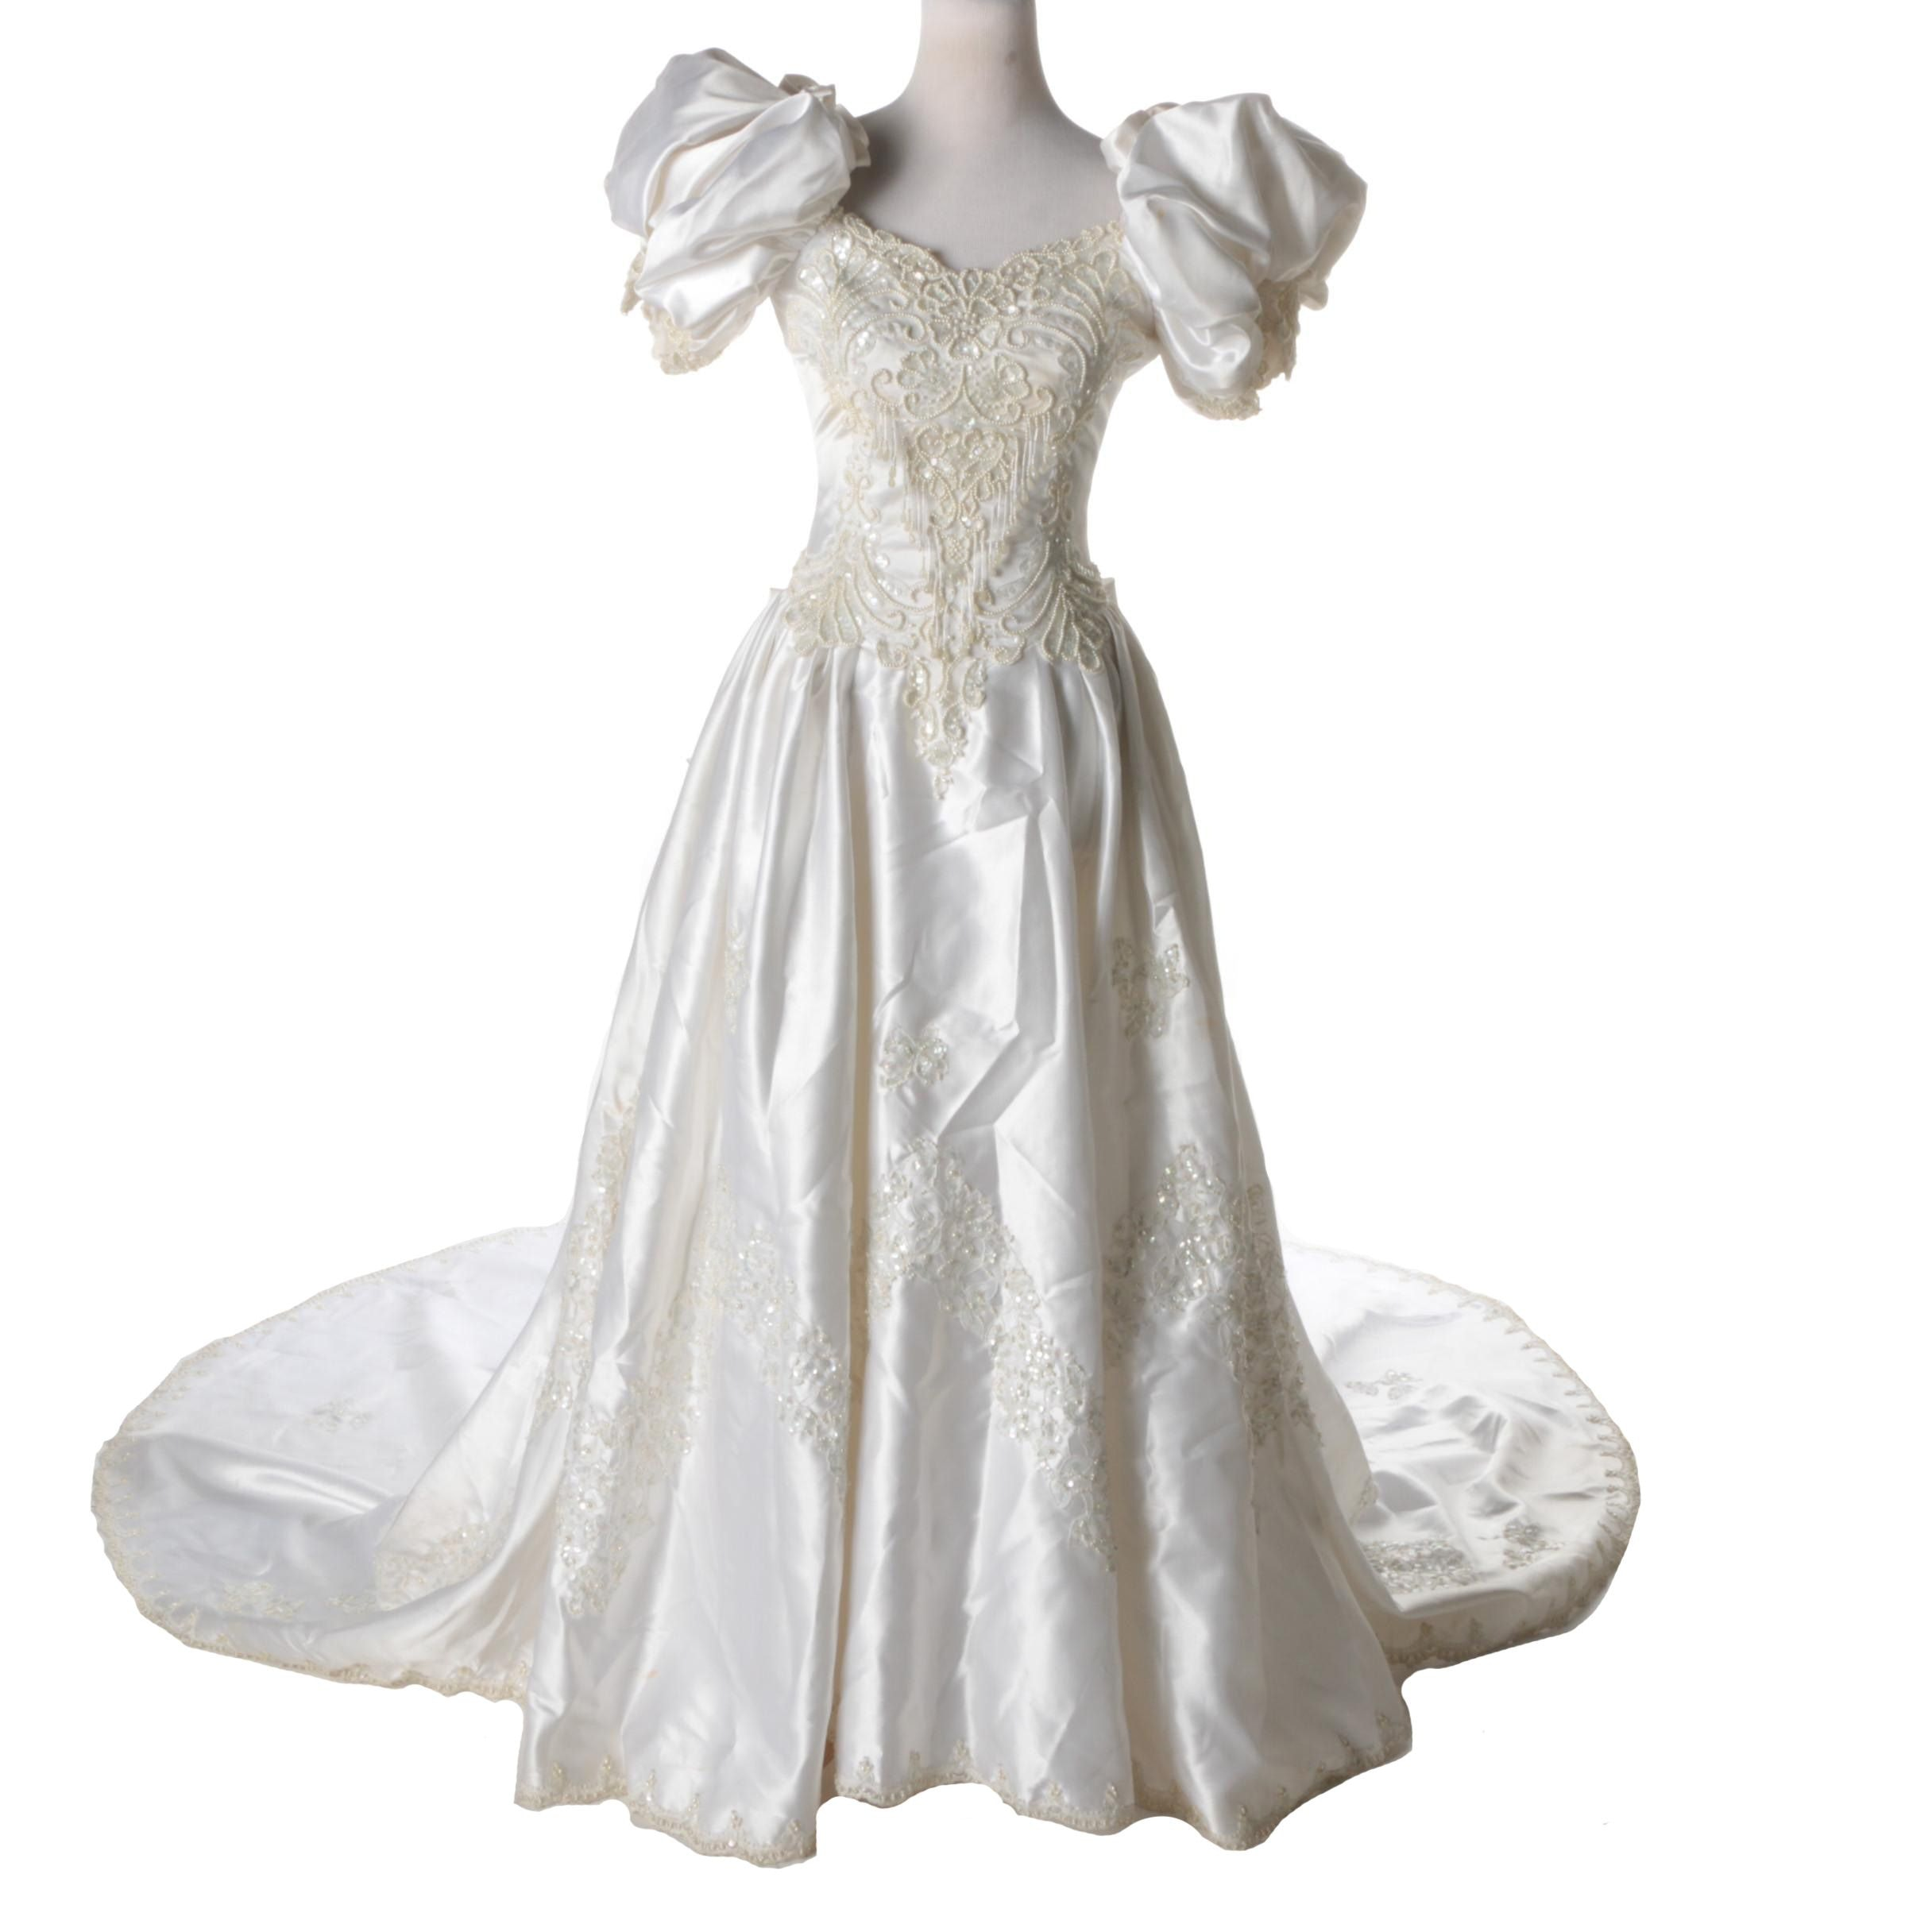 Circa 1980s Sweetheart Gowns Wedding Dress